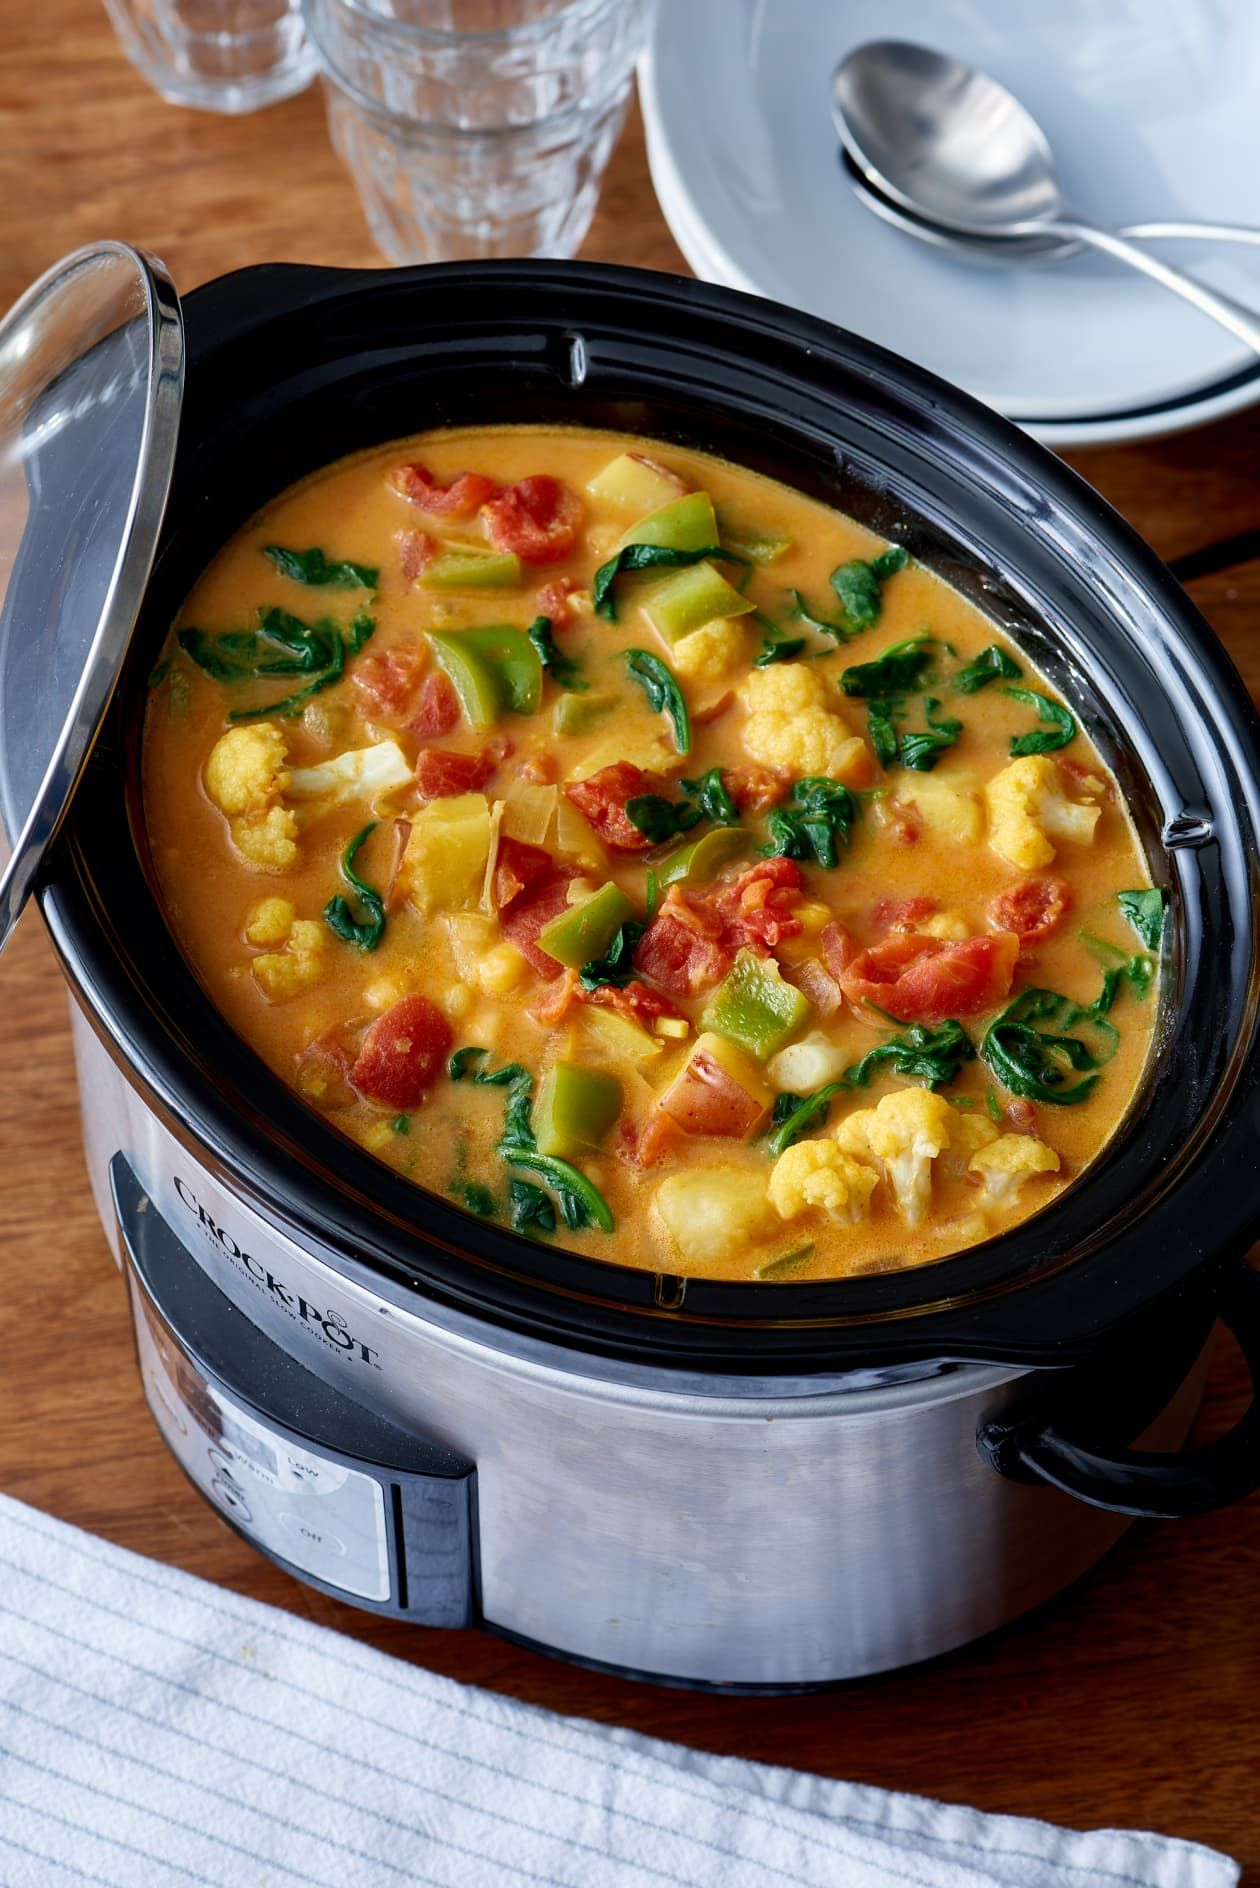 Slow Cooker Recipe: Curried Vegetable and Chickpea Stew